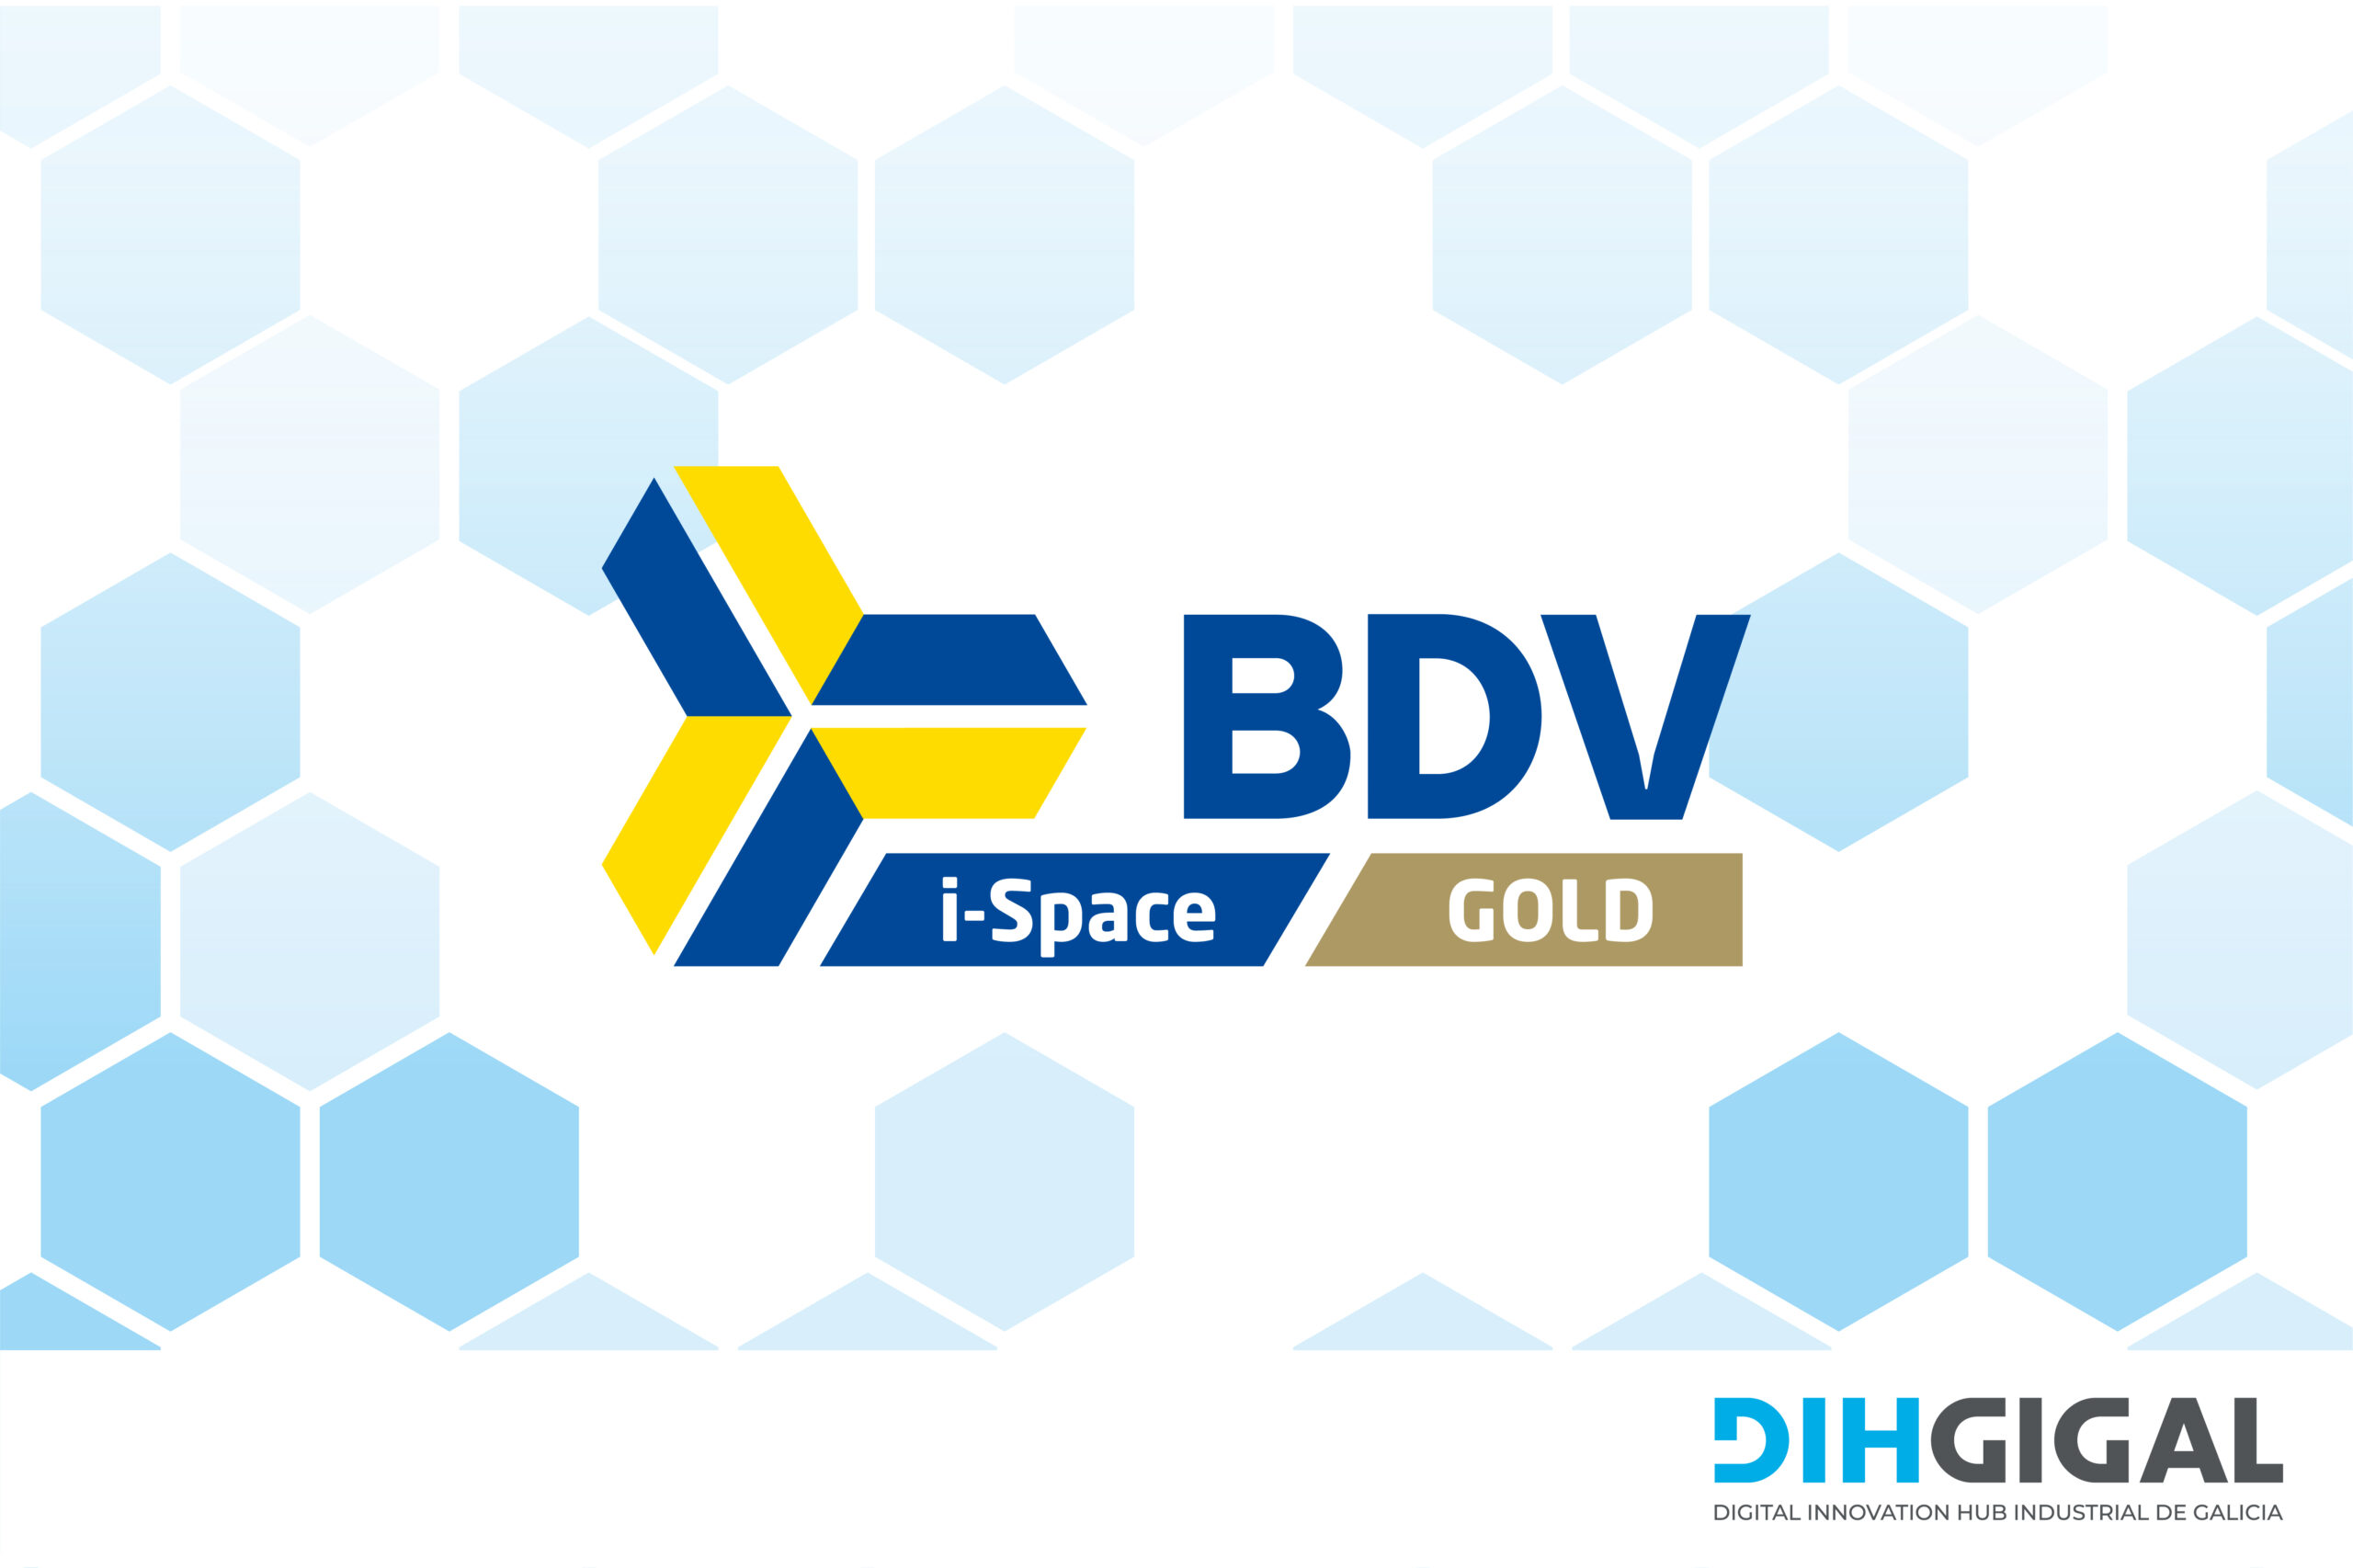 Gold i-space label